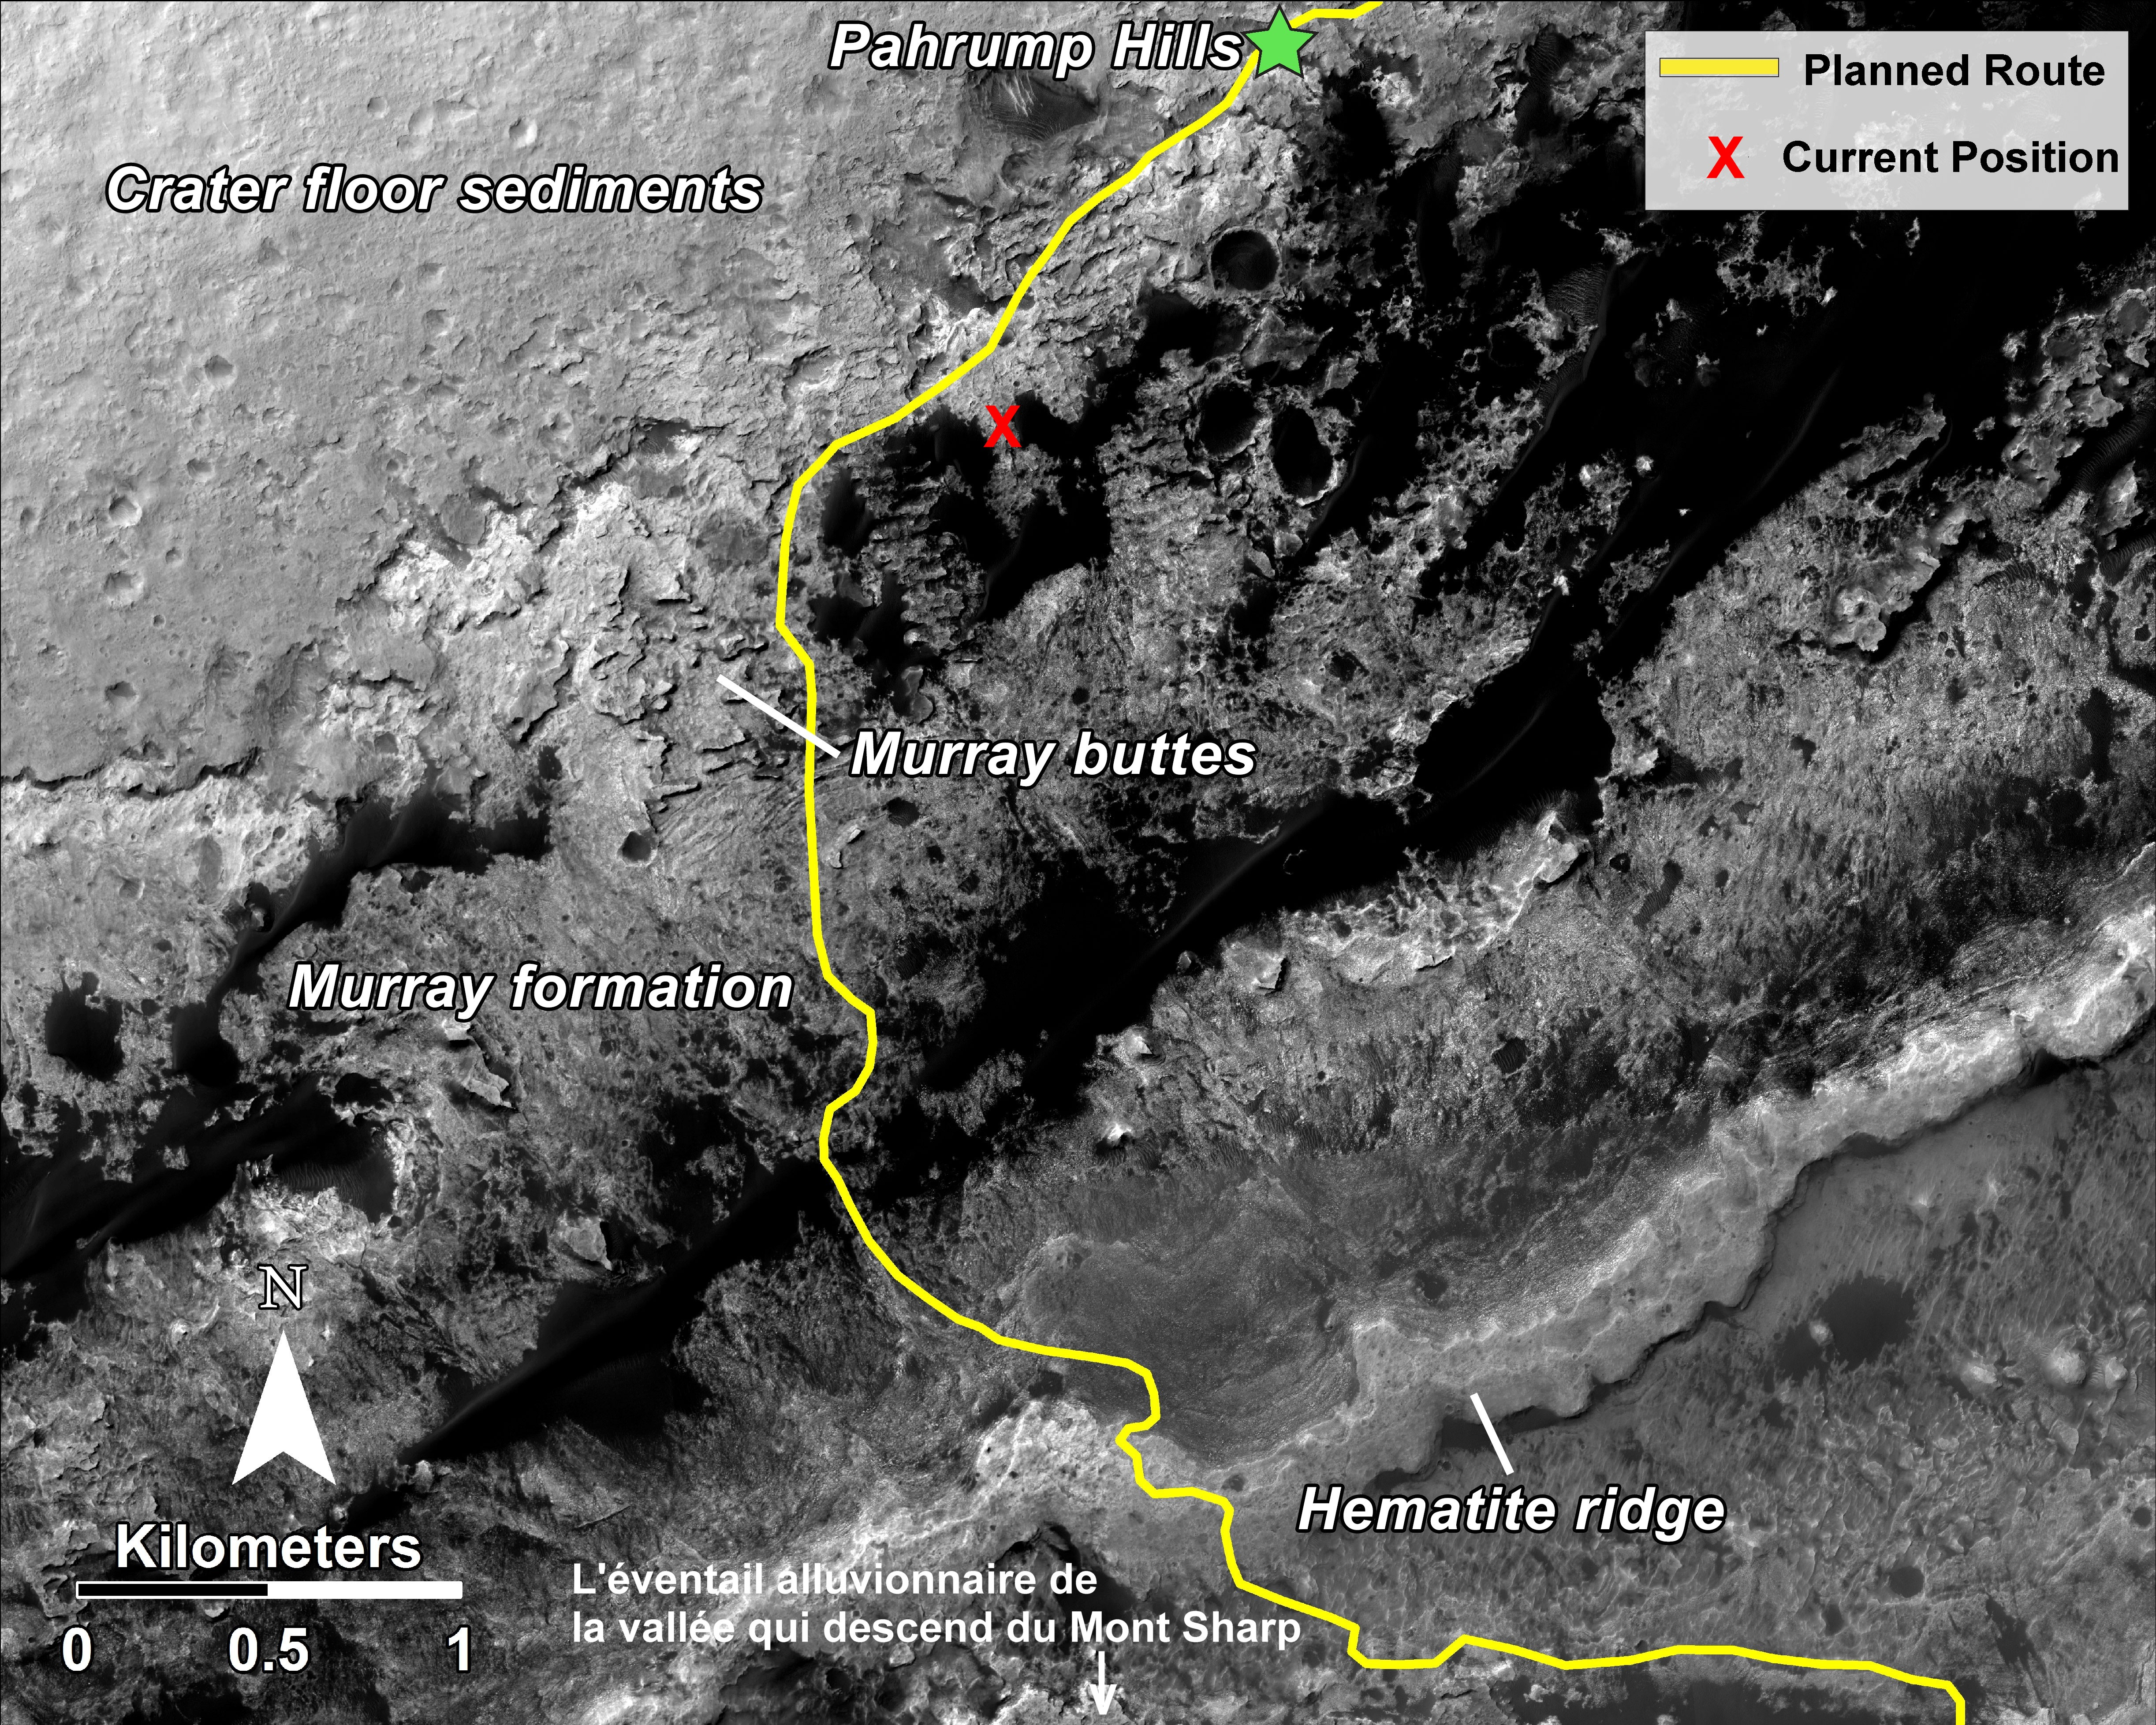 nasa-msl-mro-curiosity-rover-hirise-planned-route-map-pahrump-hills-to-mount-sharp-pia18780-full-renseigné (1)